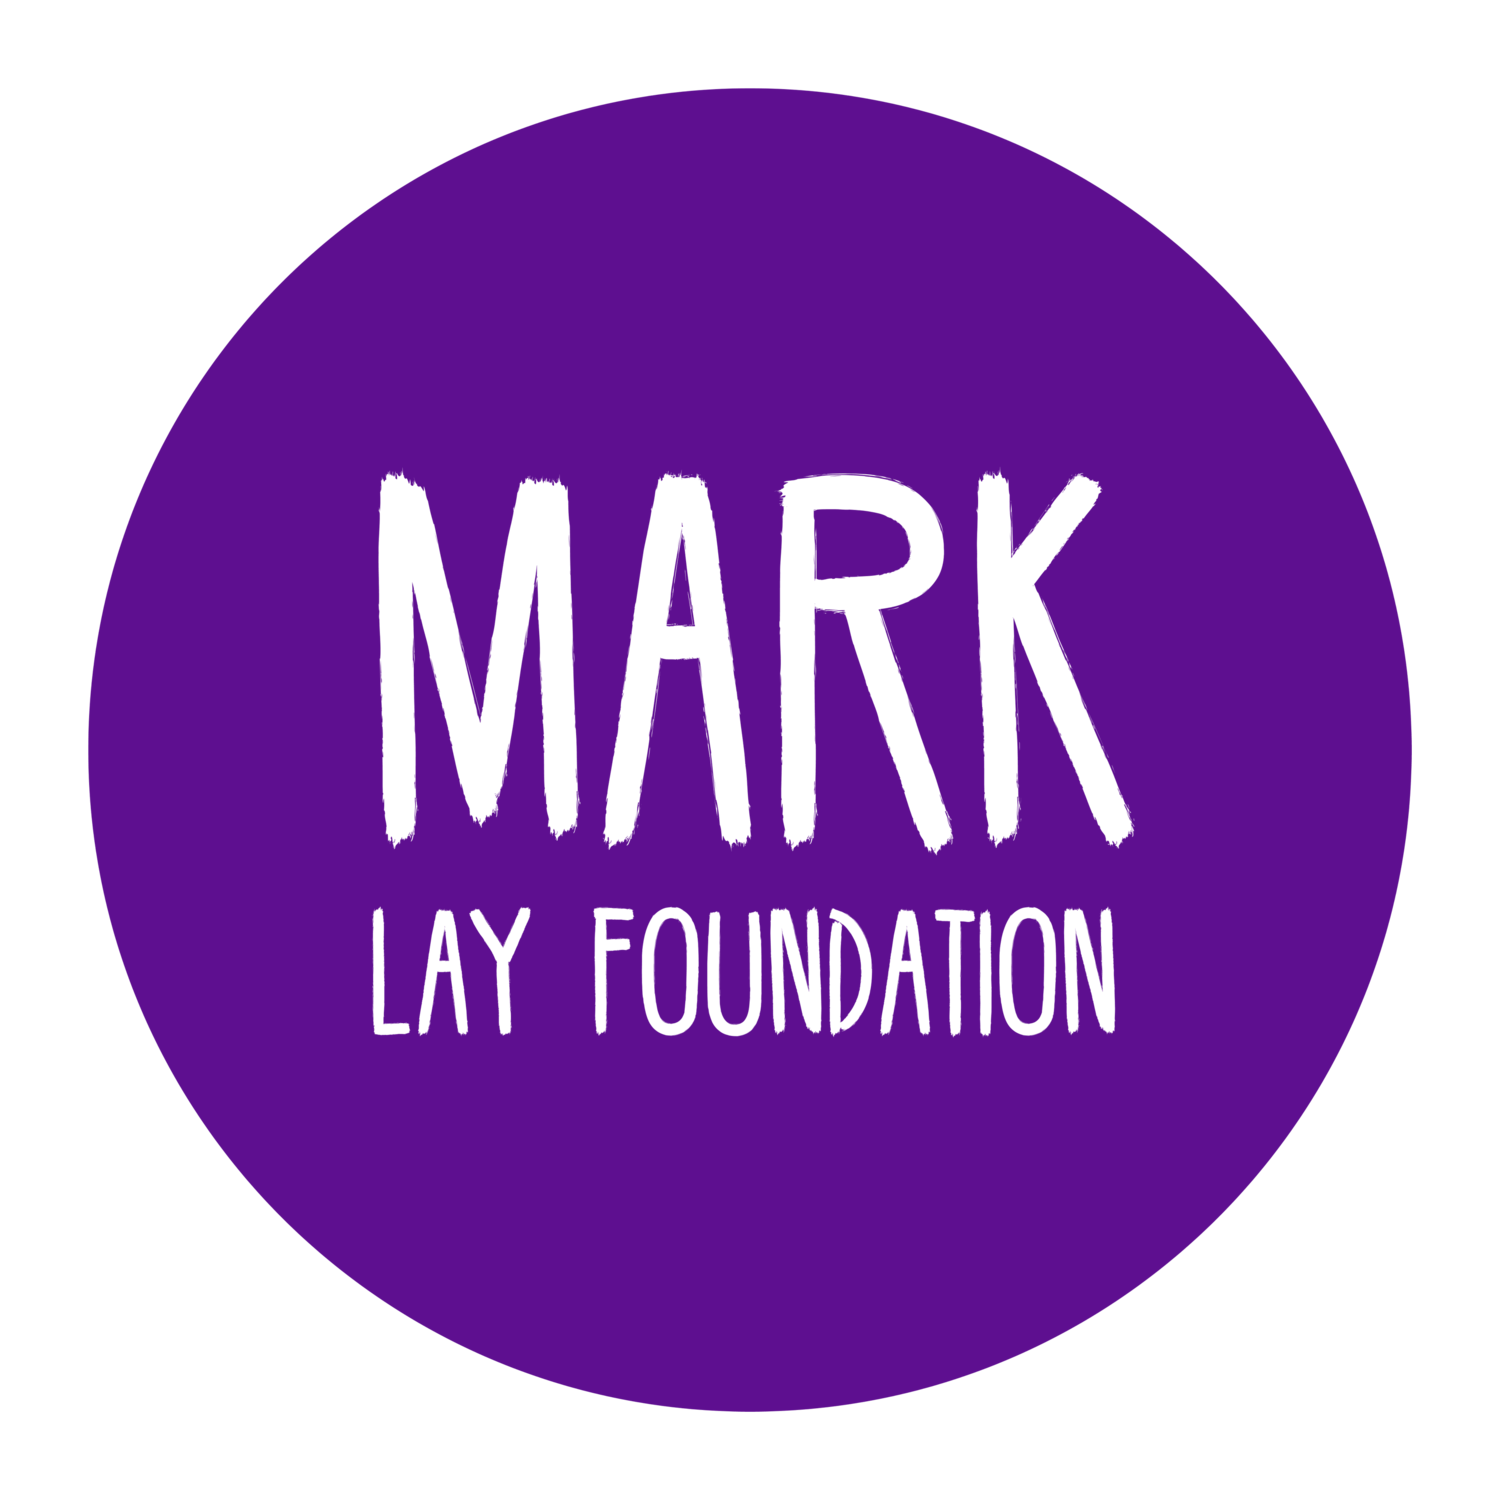 Mark Lay Foundation